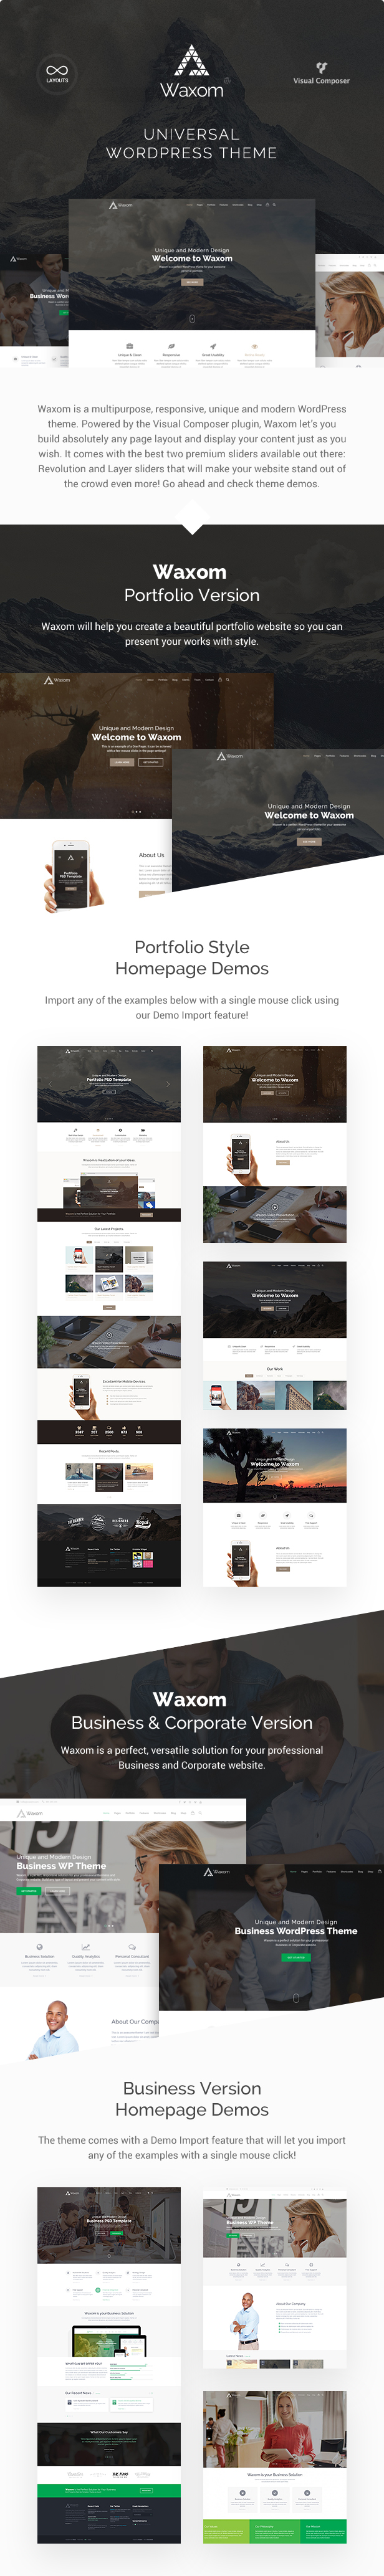 Waxom - Clean & Universal WordPress Theme - 1